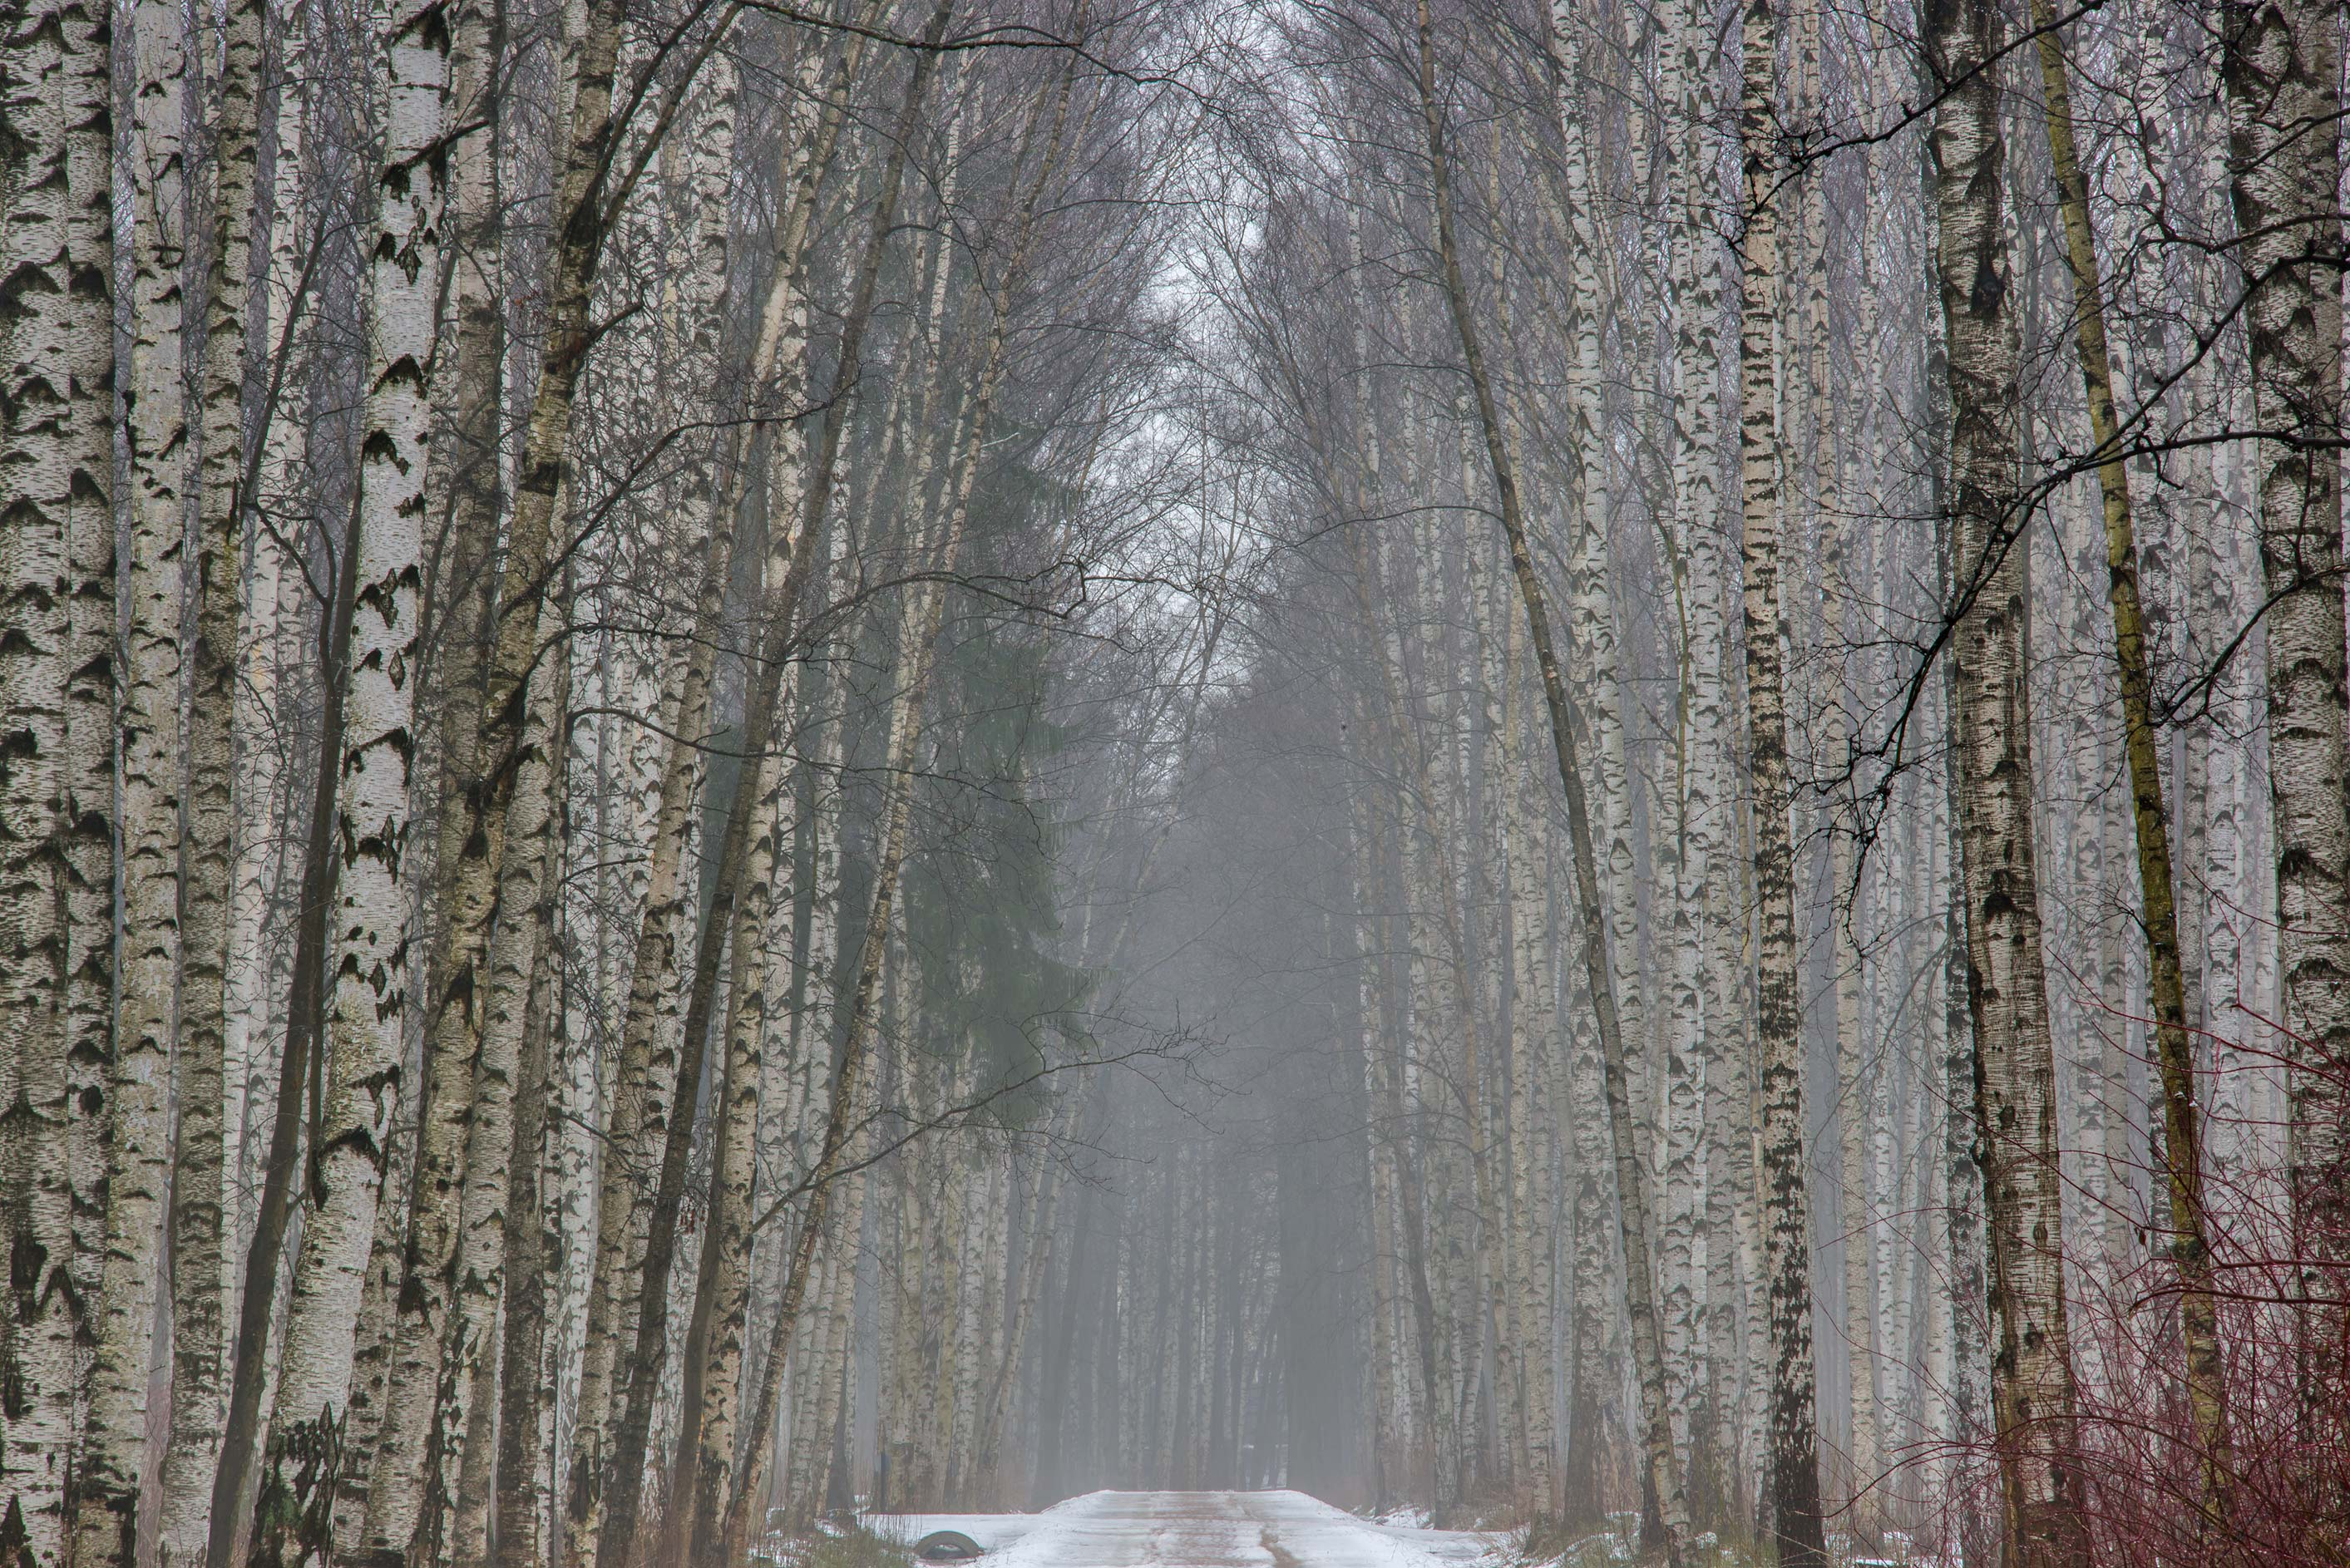 Birch alley in Udelny Park (former Celiuskintsev) in mist. St.Petersburg, Russia